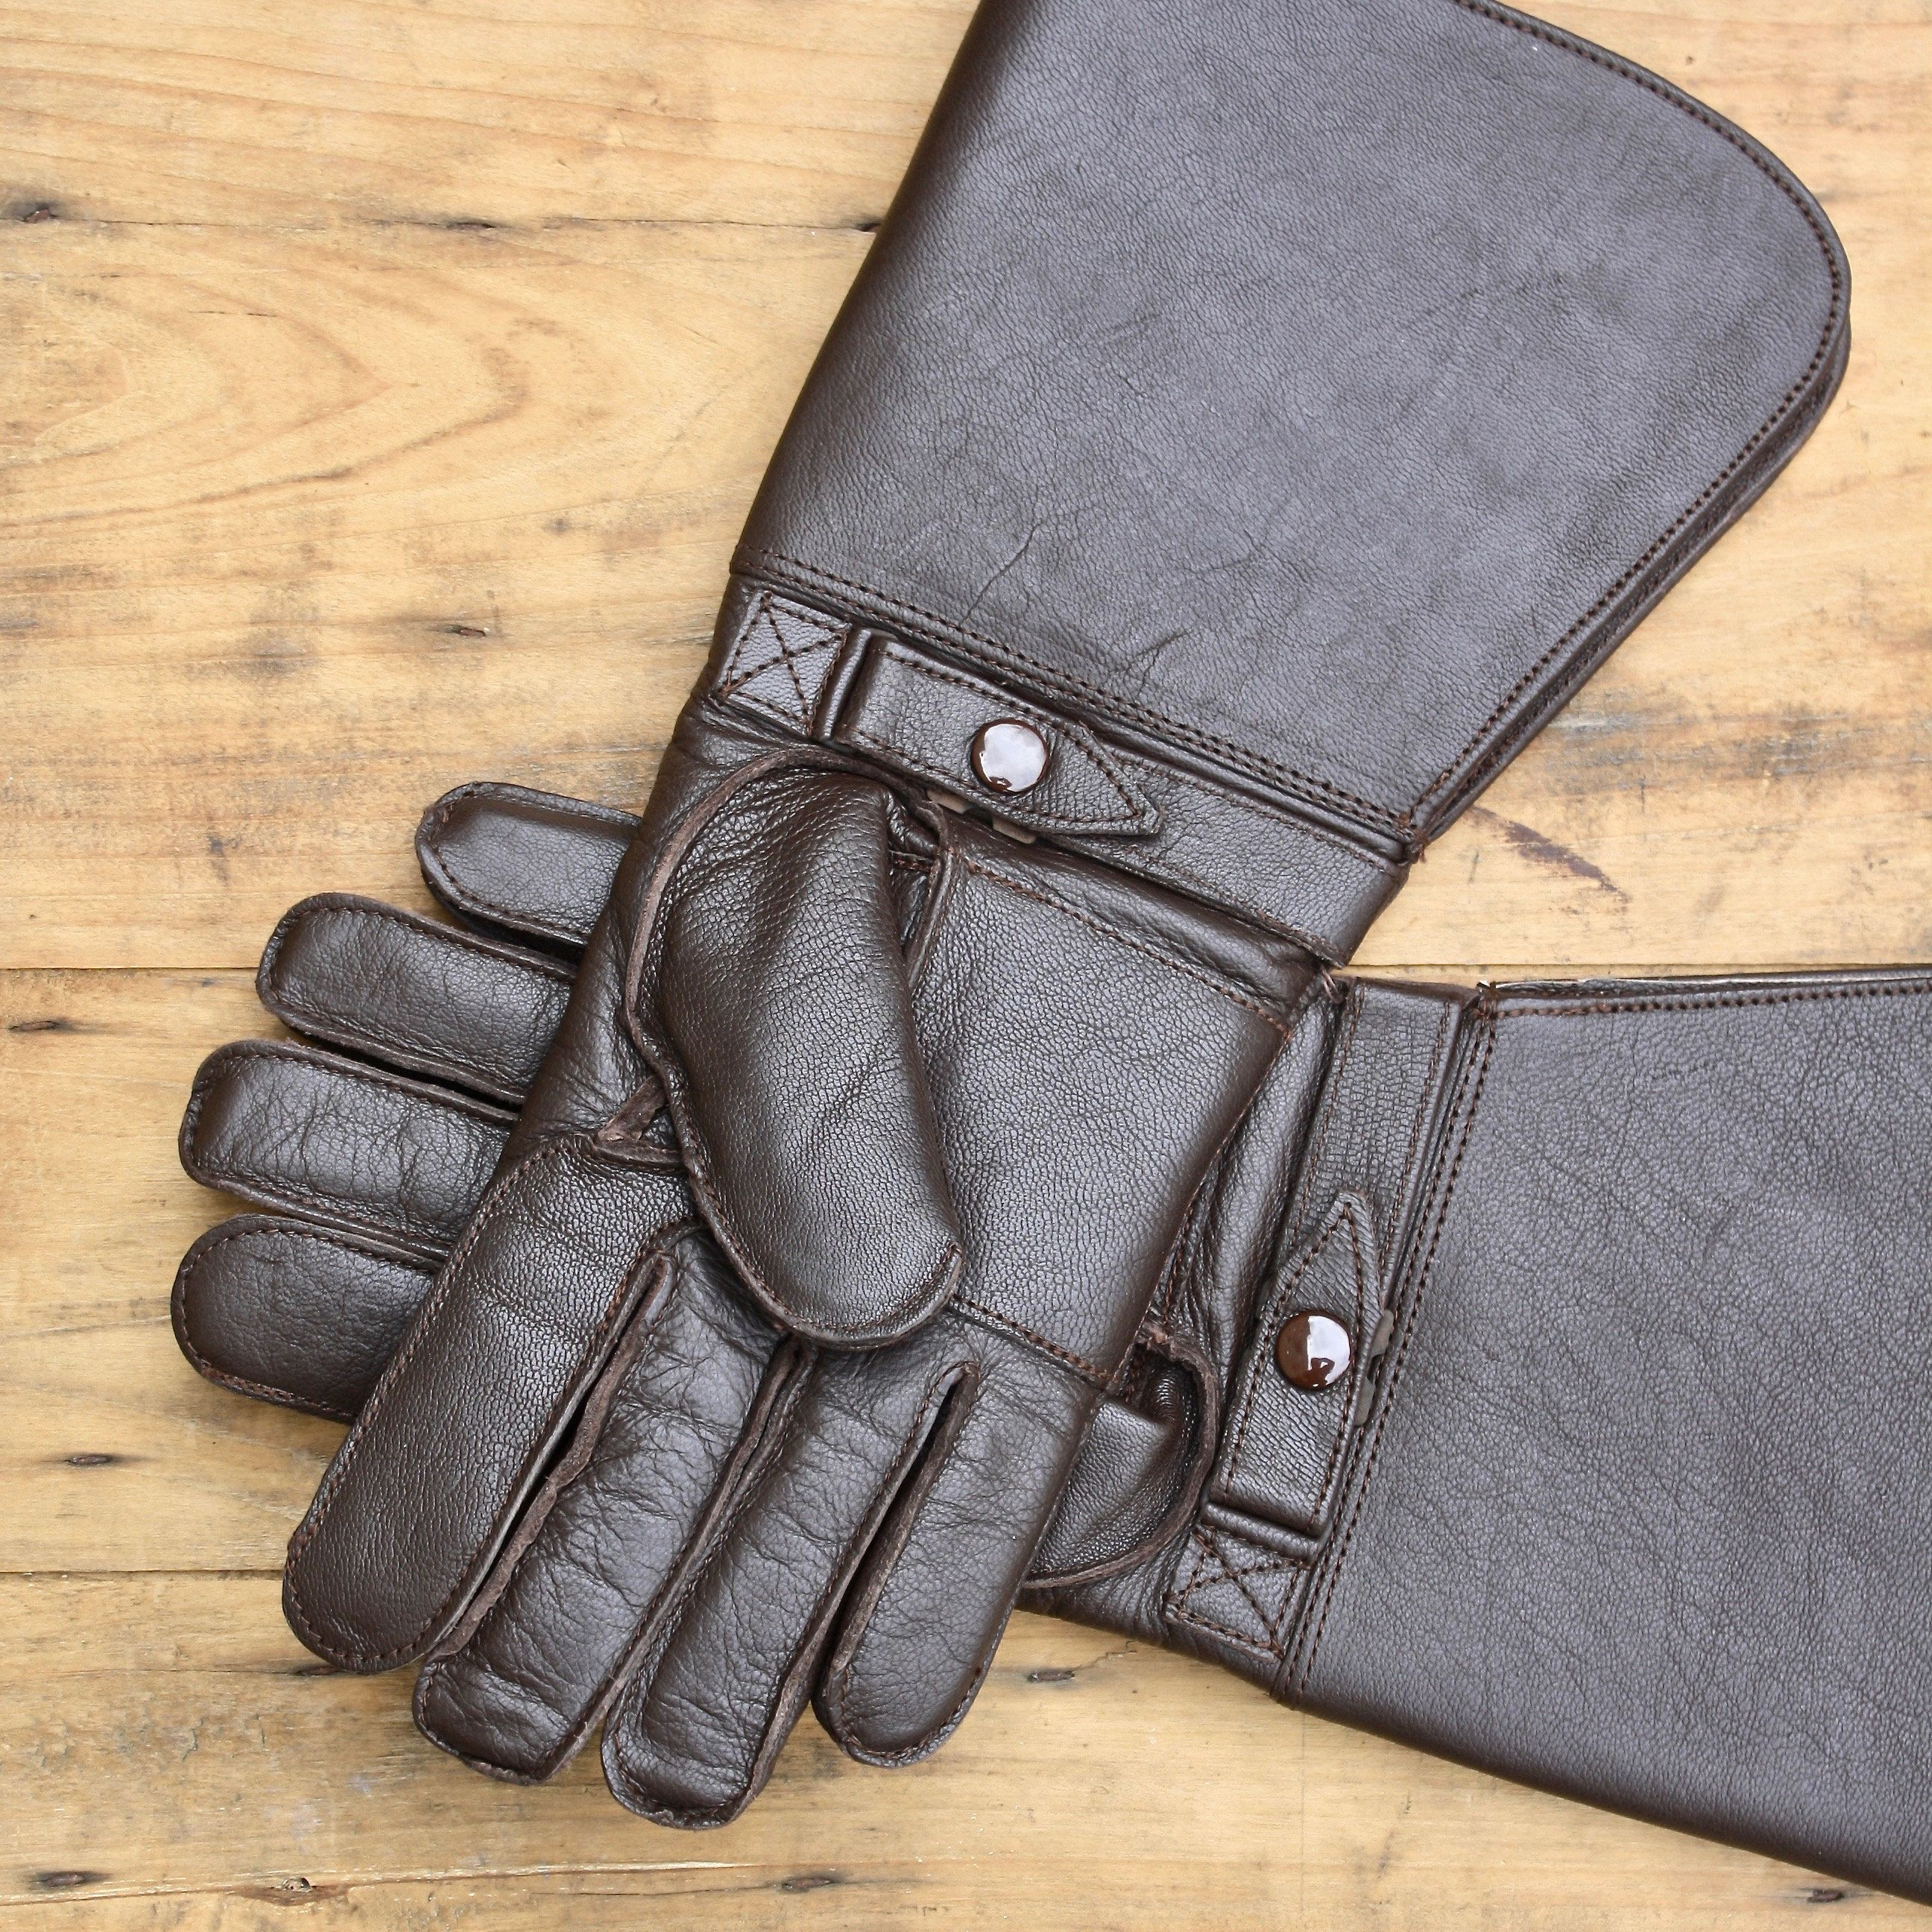 Vintage French Motorcycle Gloves Made By Renowned Artisan Glove Maker Maison Fabre Rare Motorcycle Gloves Vintage Indian Motorcycles Leather Motorcycle Gloves